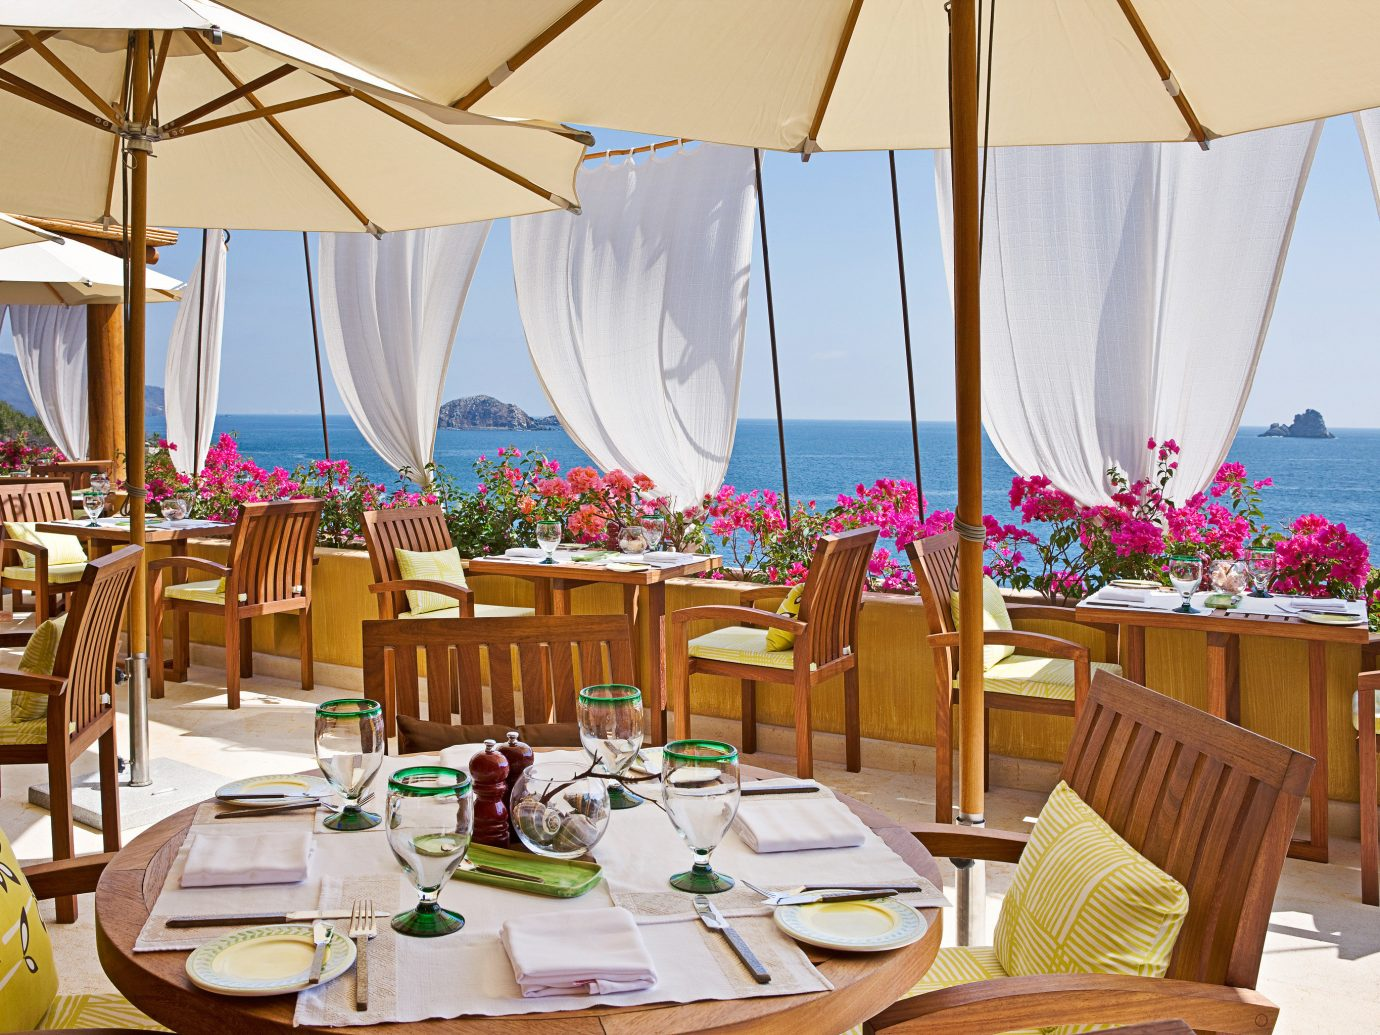 Beach Beachfront Dining Honeymoon Hotels Island Luxury Mexico Romance Romantic Rooftop Tulum table chair meal restaurant wedding Resort function hall set decorated furniture